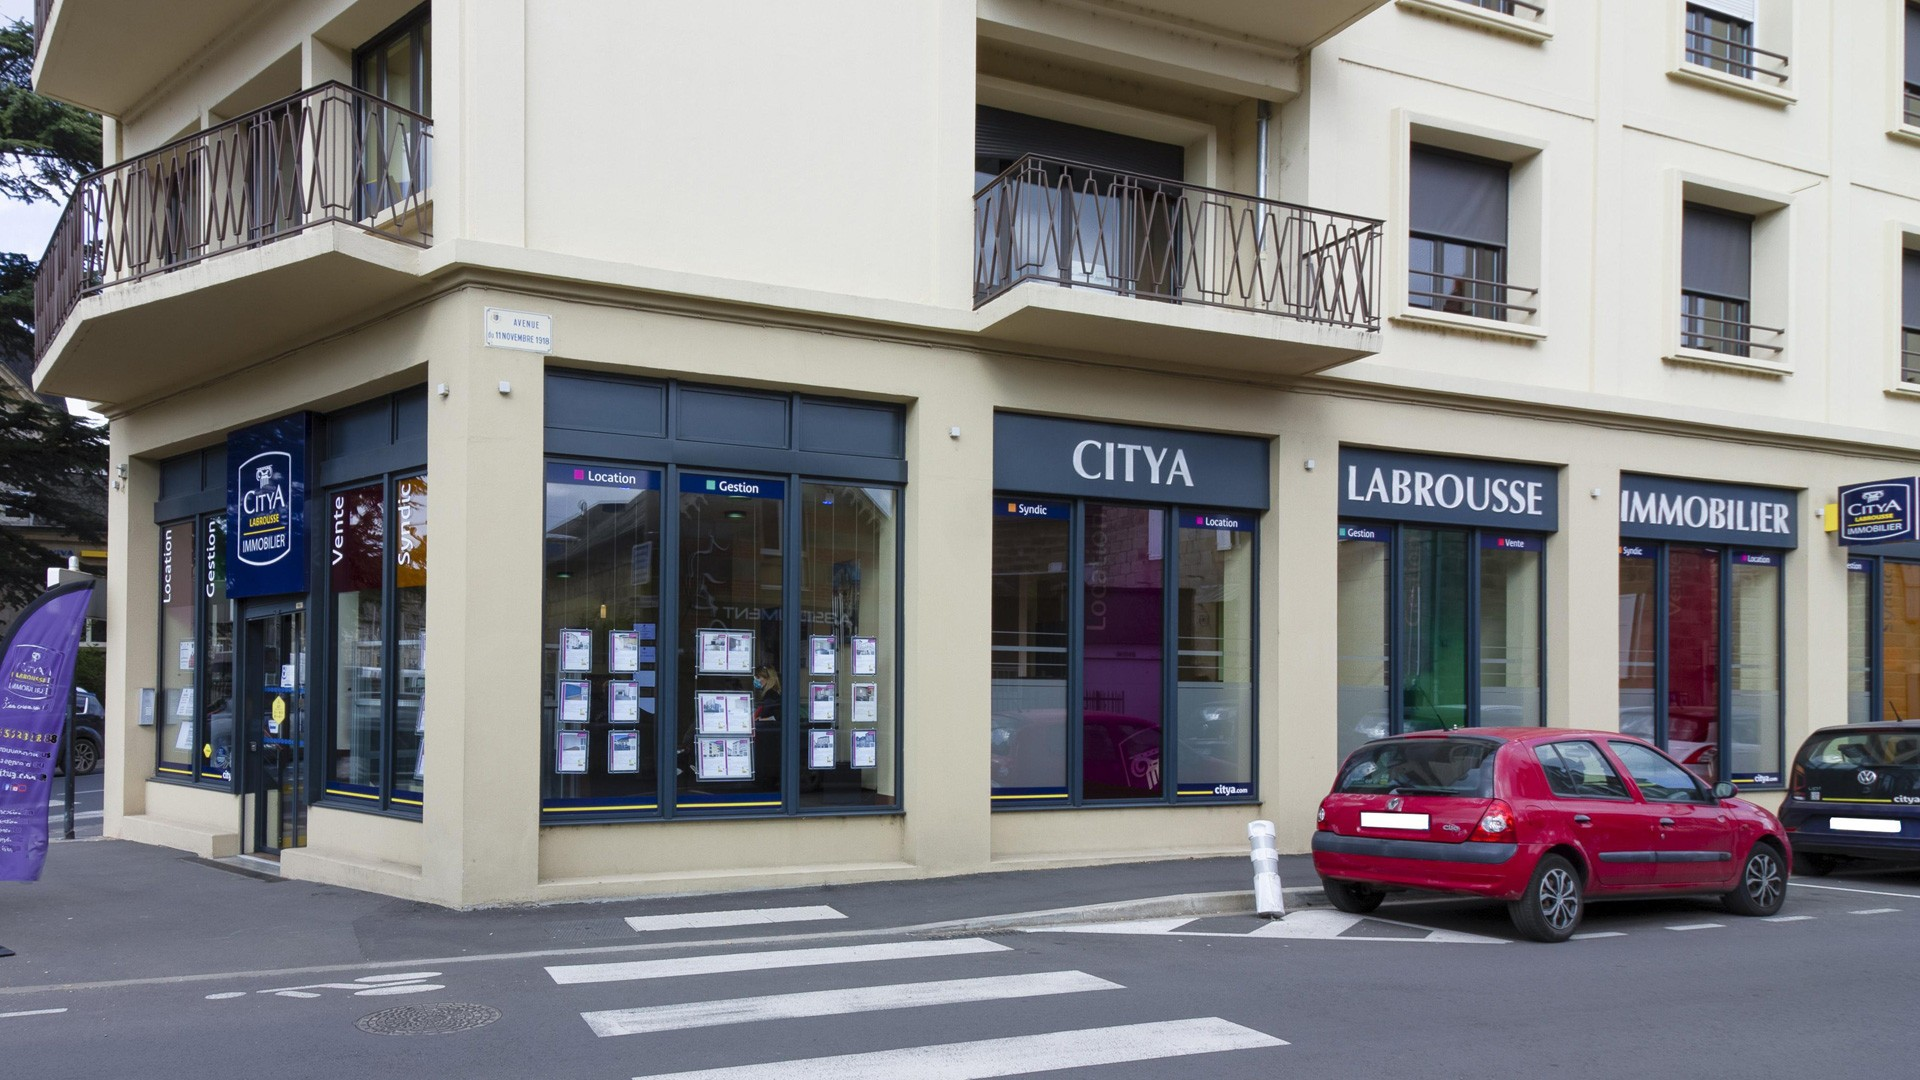 Agence immo Labrousse Immobilier